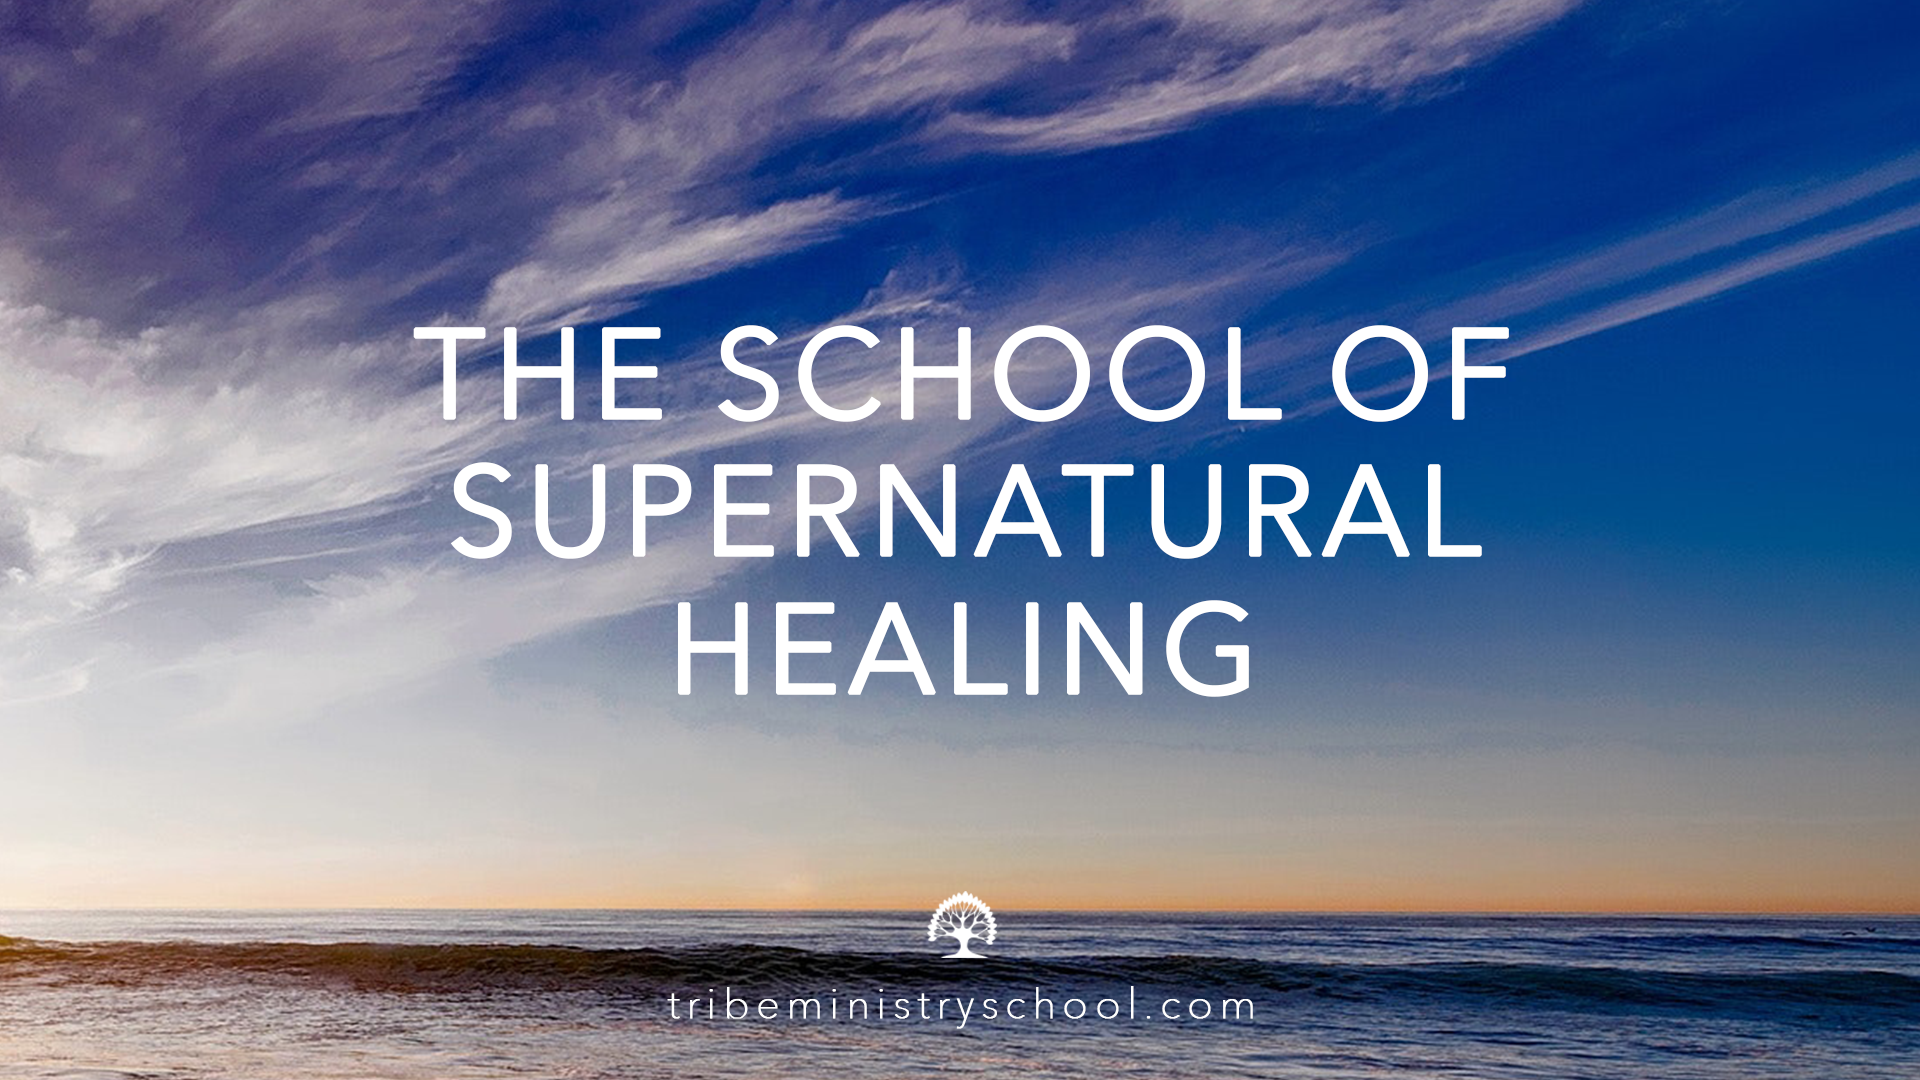 THE SCHOOL OF SUPERNATURAL HEALING